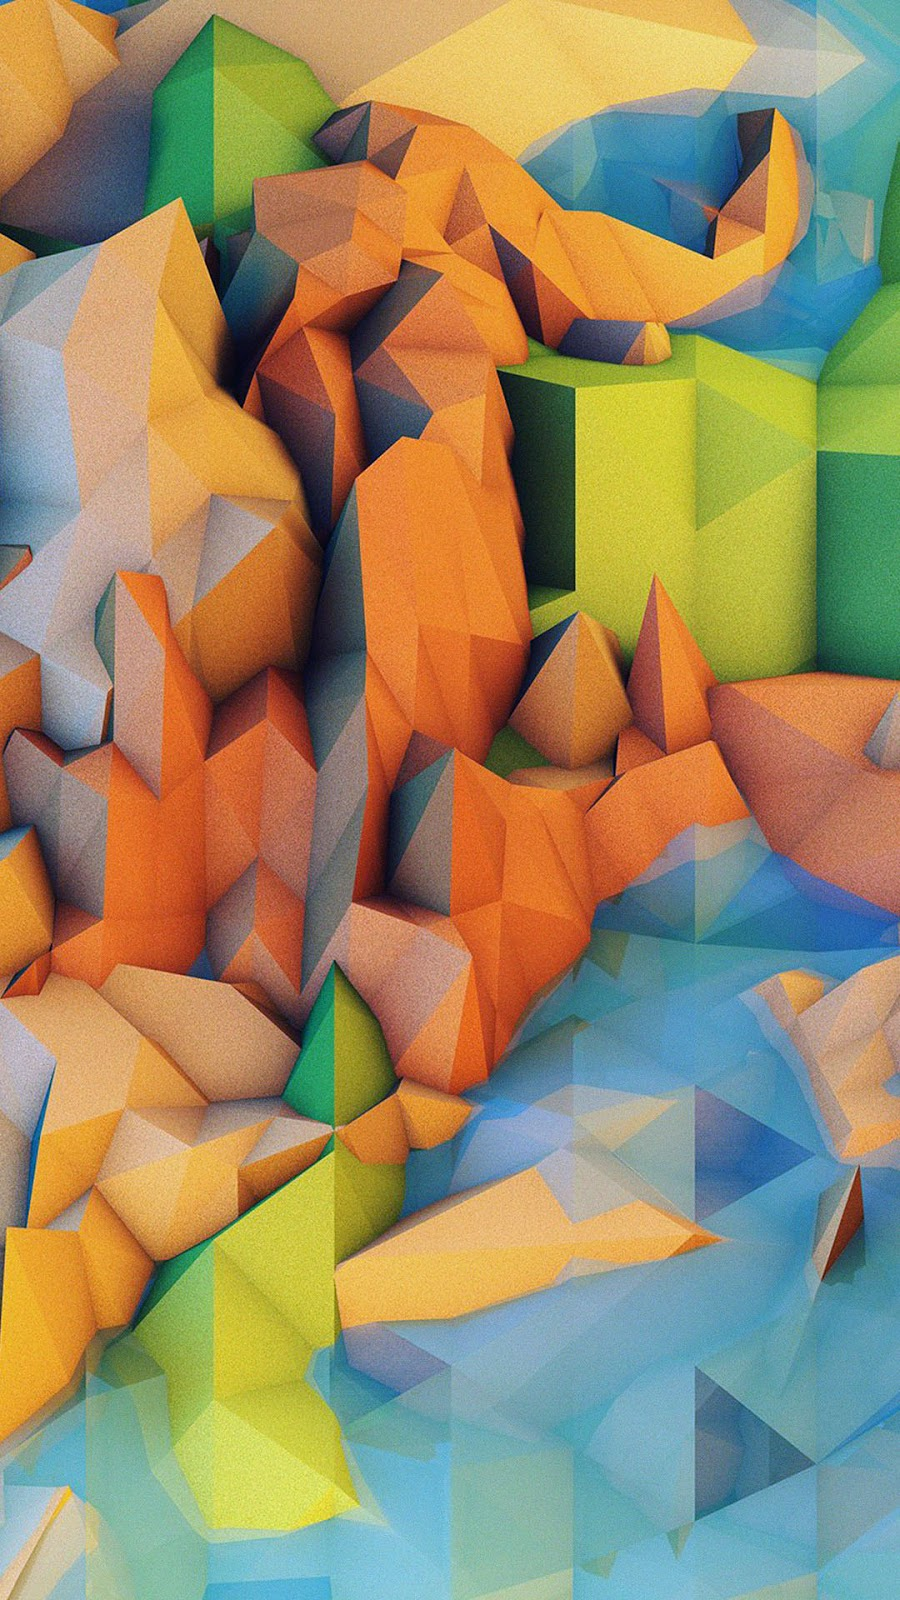 Low Poly Mountains CGI Android Wallpaper